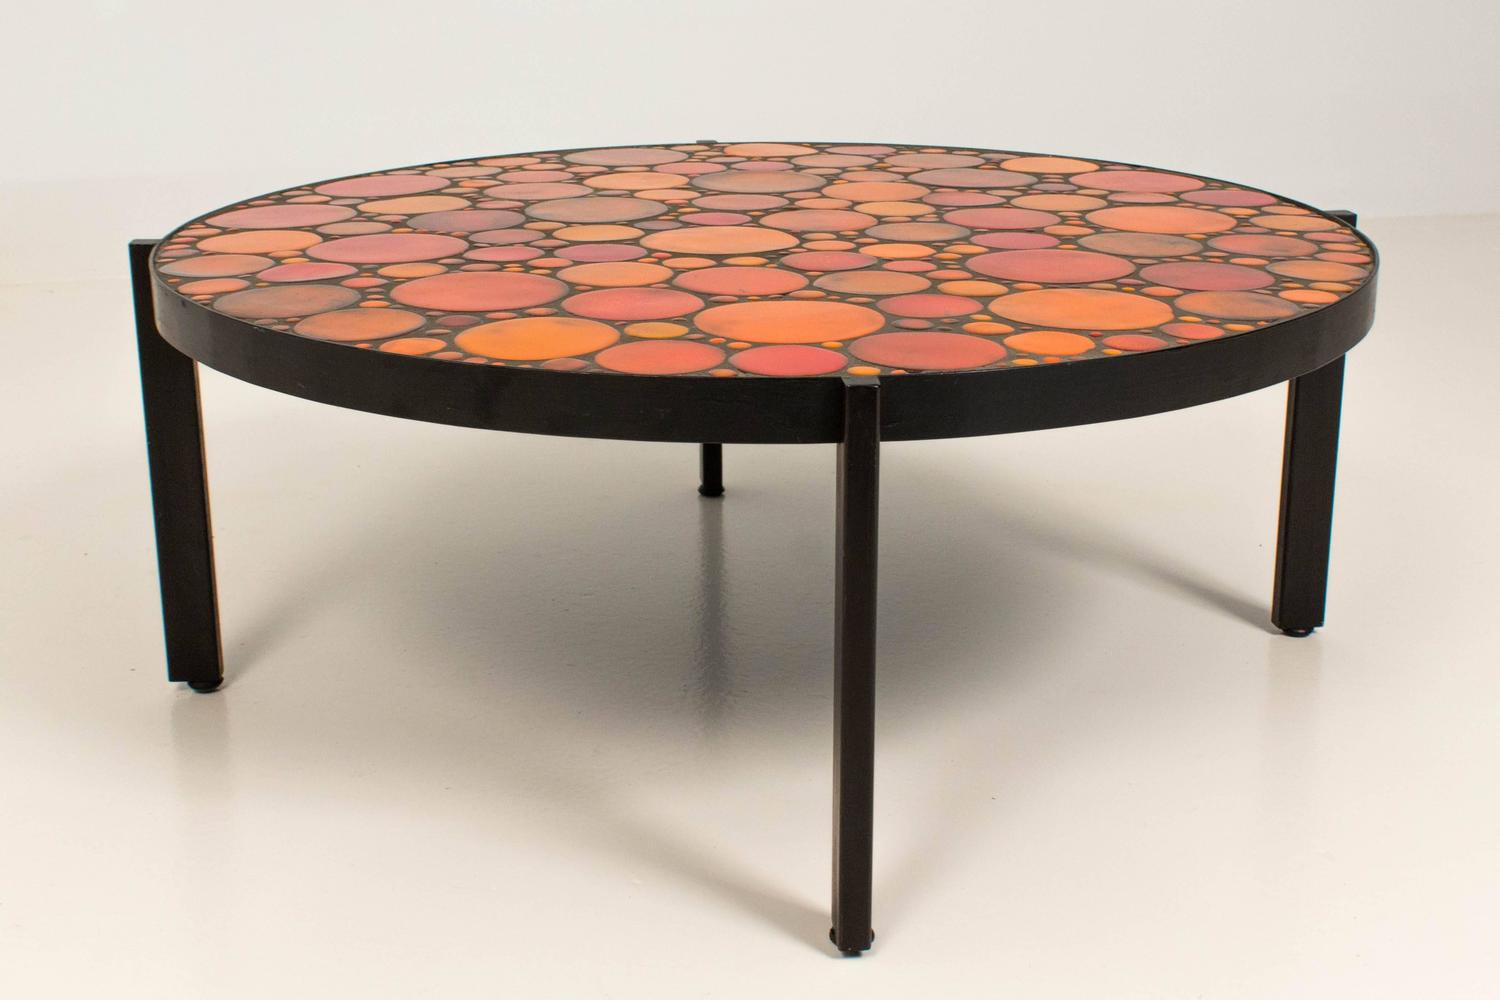 Mid century modern coffee table with mosaic tile top for Tile top coffee table